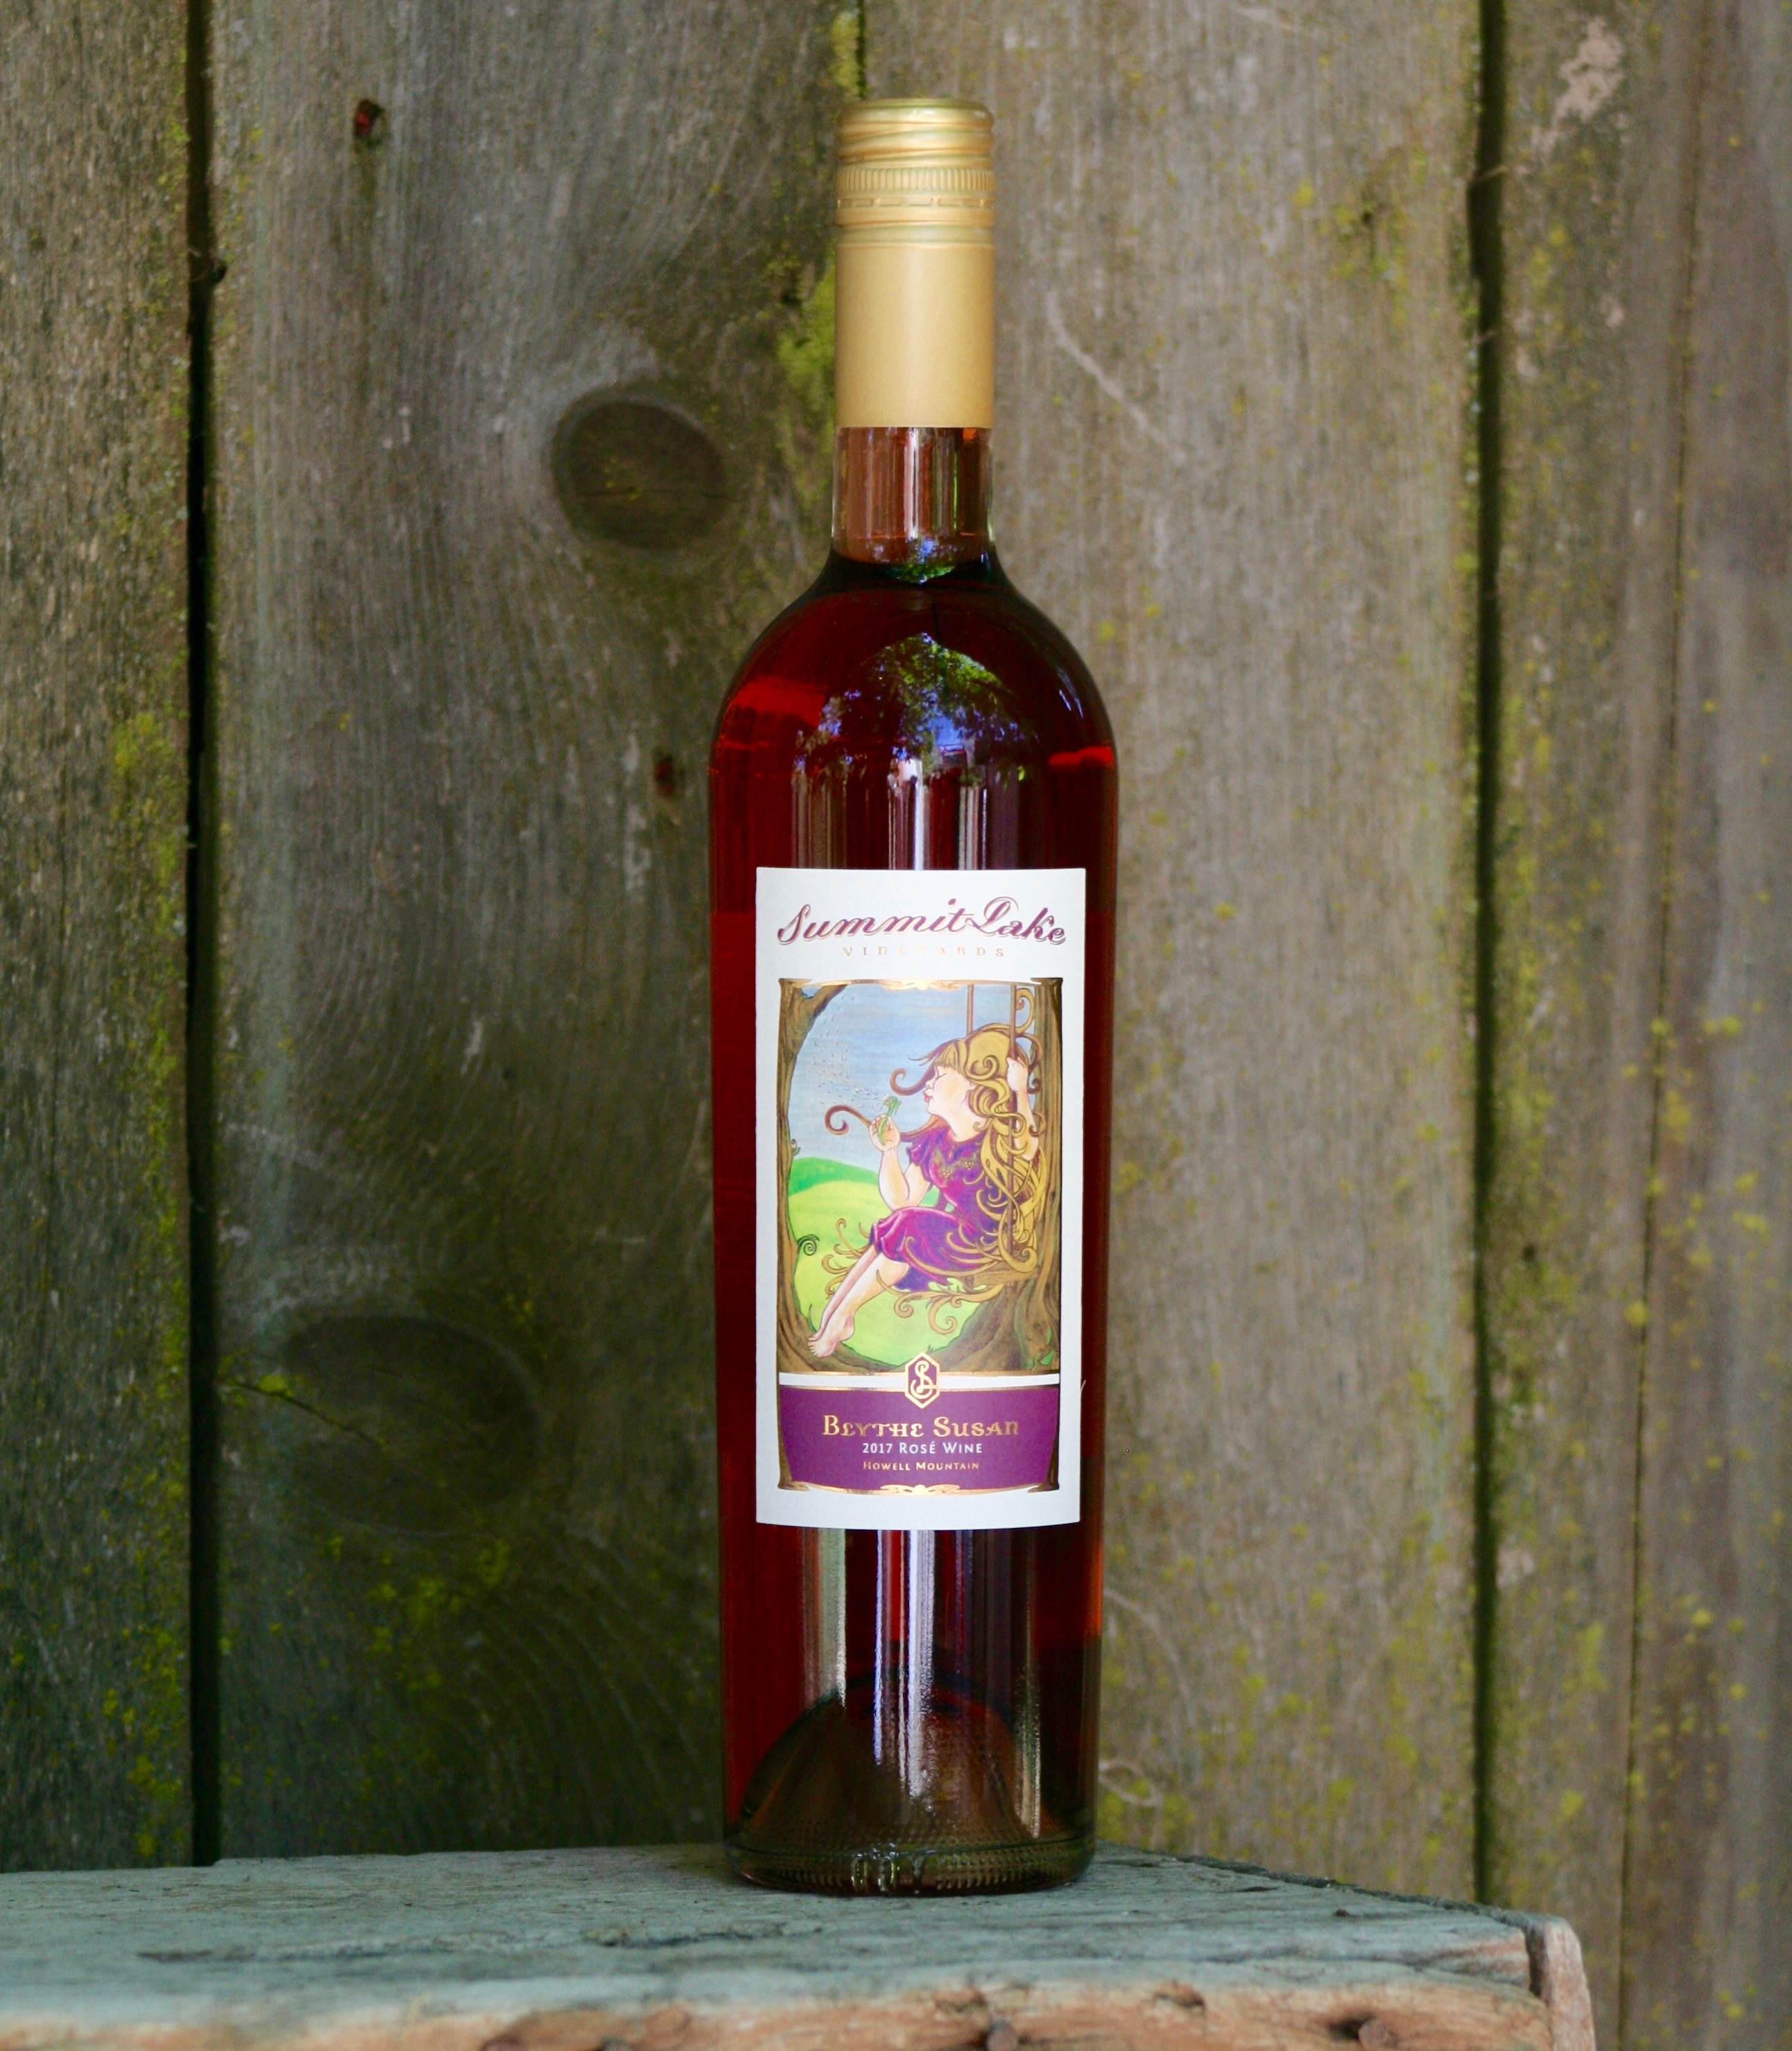 2017 Blythe Susan Rose  - Summit Lake Vineyards & Winery